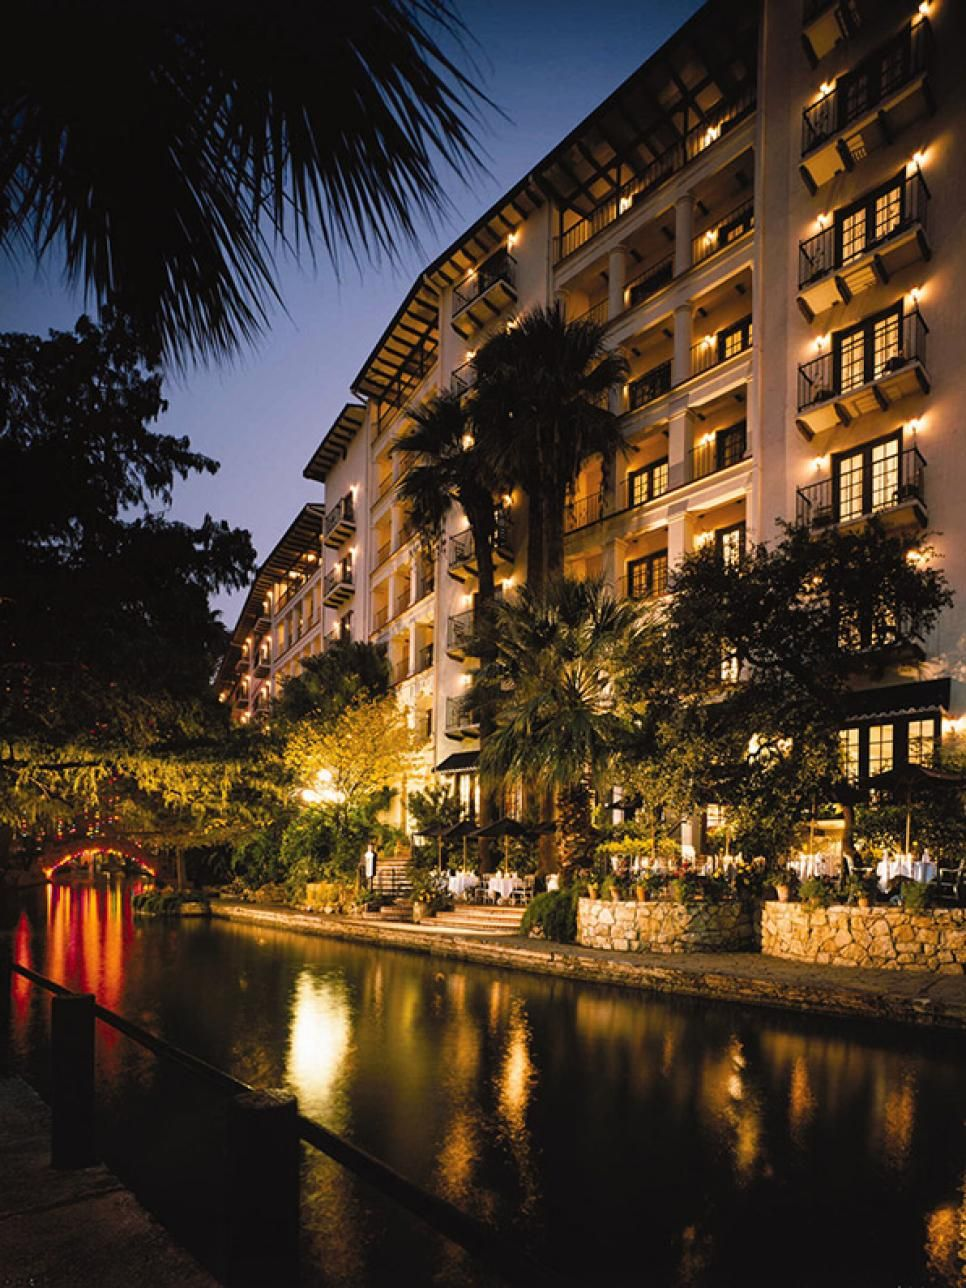 After A Day Spent Enjoying The San Antonio River Walk You Won T Have To Go Far For Comfortable Accommodations Check Out Top Hotels Near